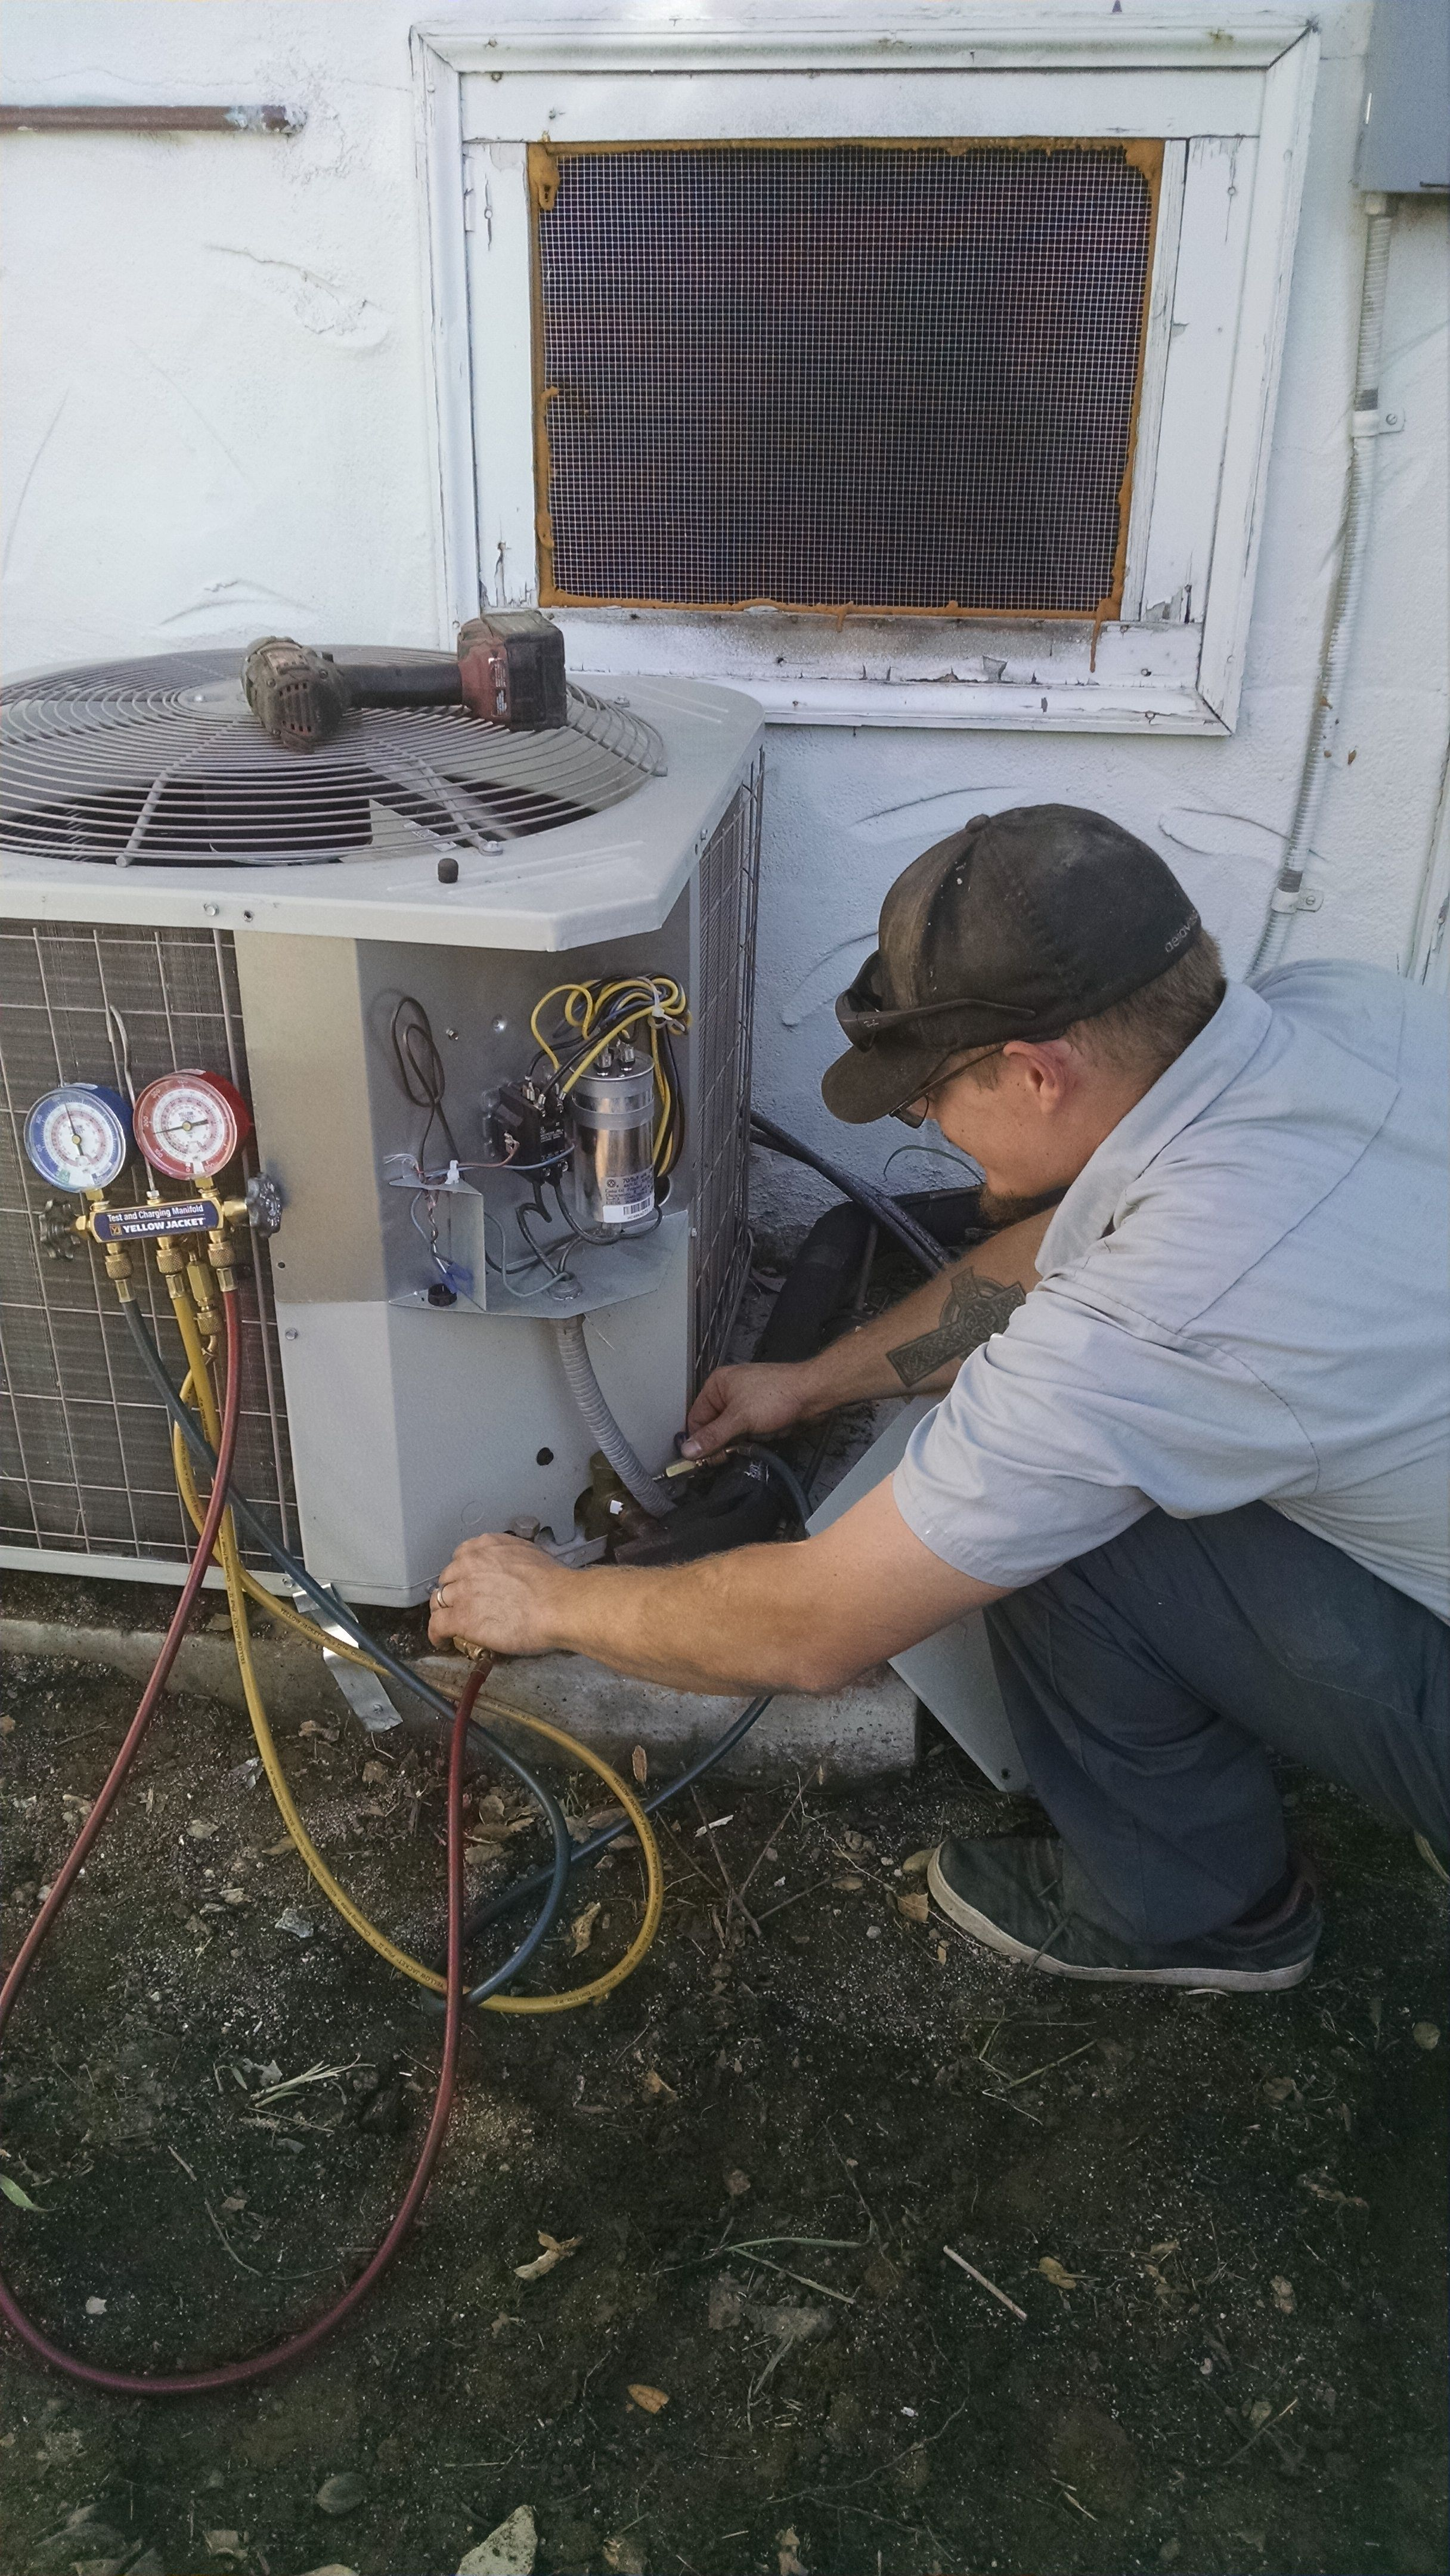 ATC technician performing an AC repair